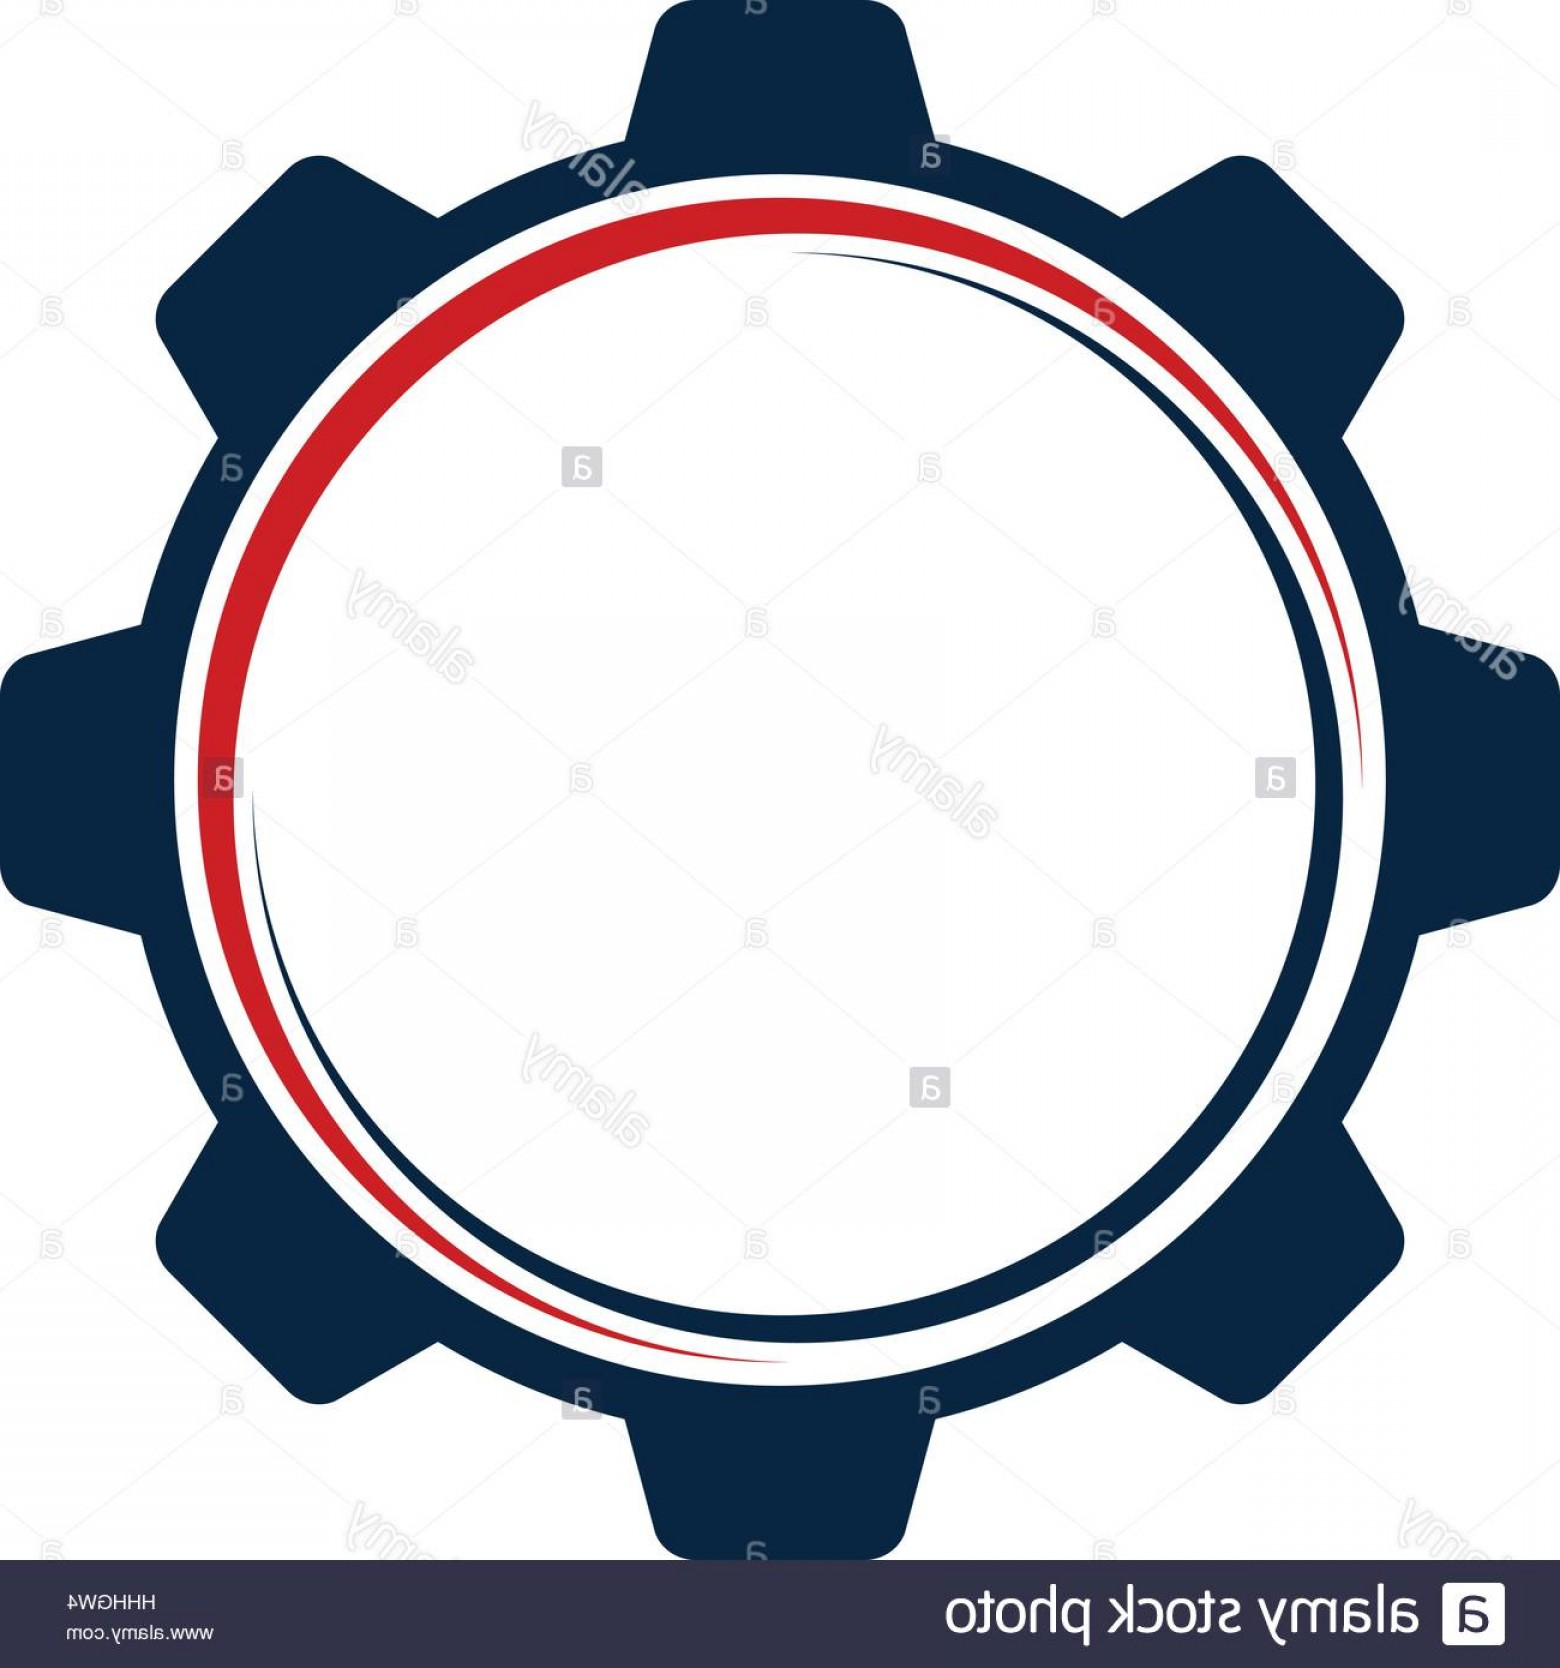 Vector Gear Graphics: Stock Photo Gear Template Logo